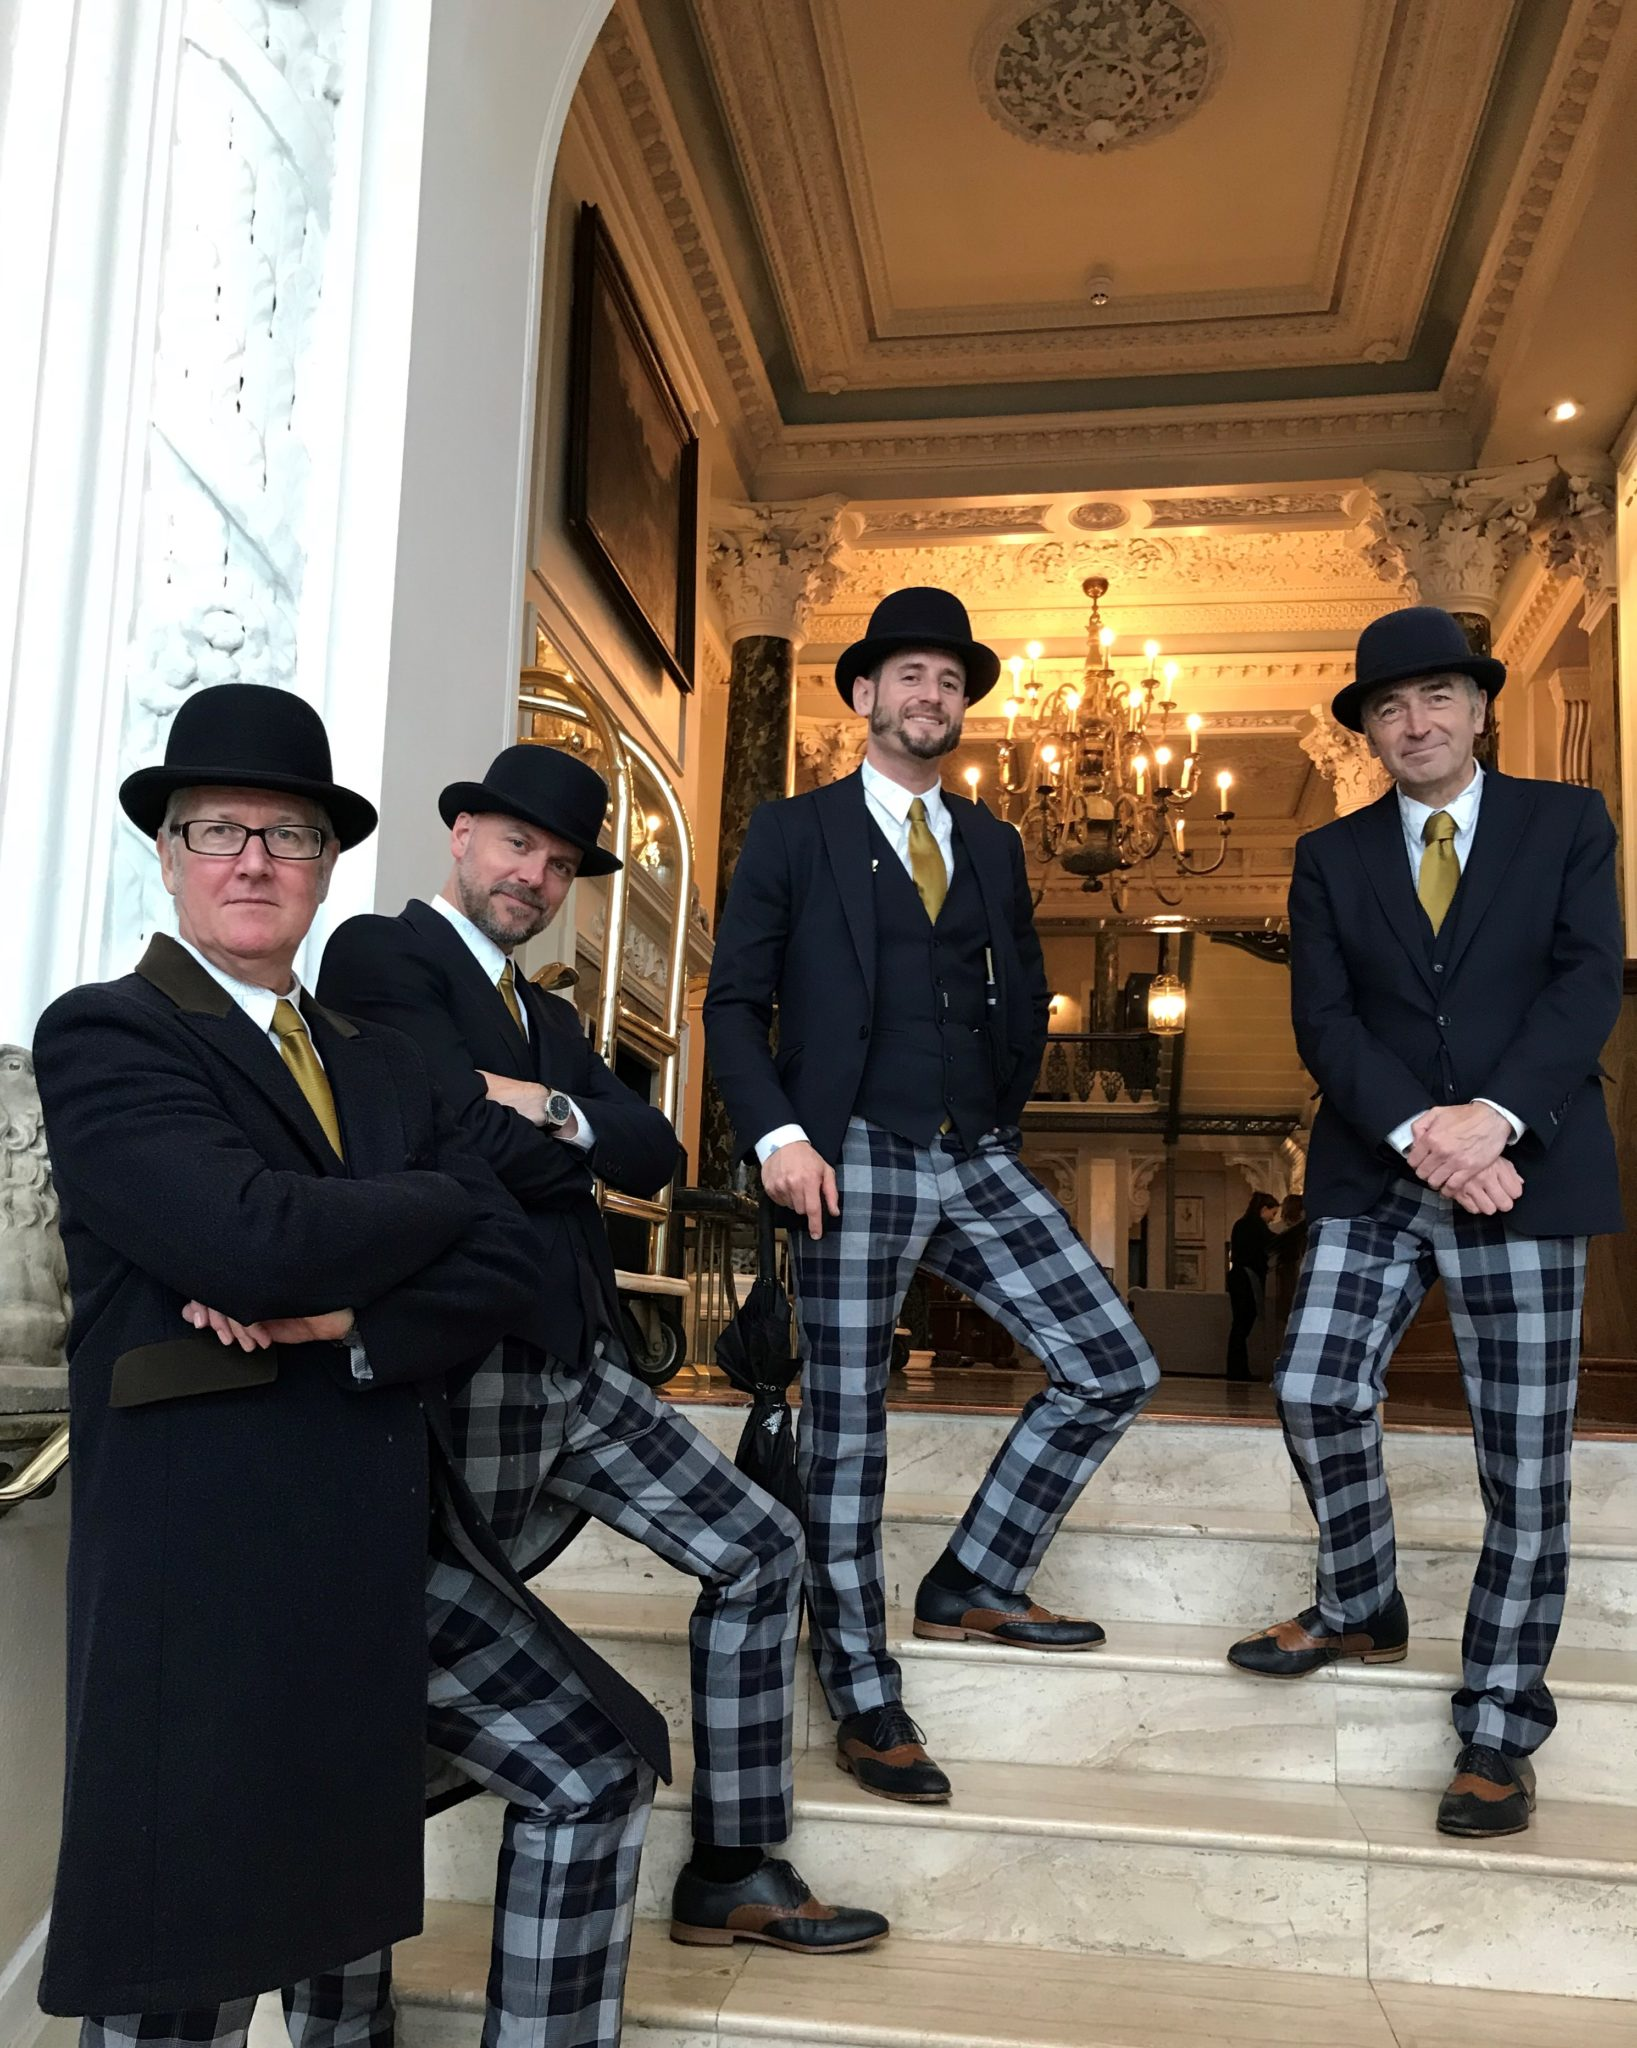 The Grand Brighton concierge